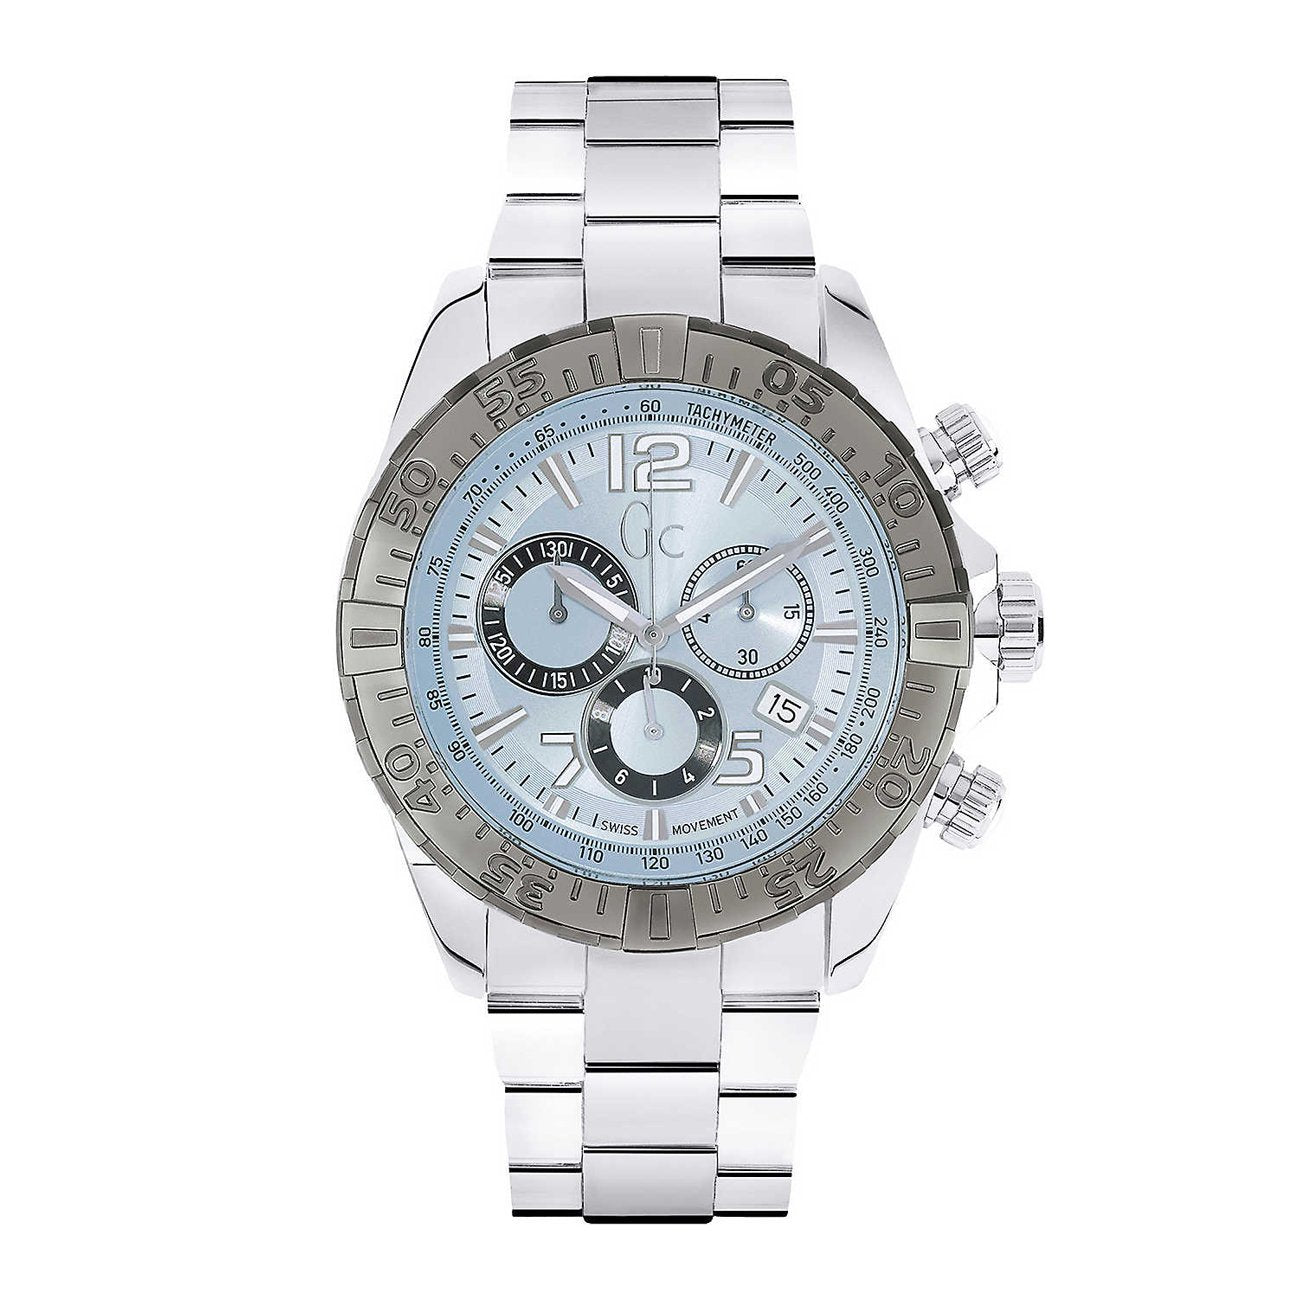 Guess Collection Sportracer Men's Chronograph Watch Steel - Watches & Crystals